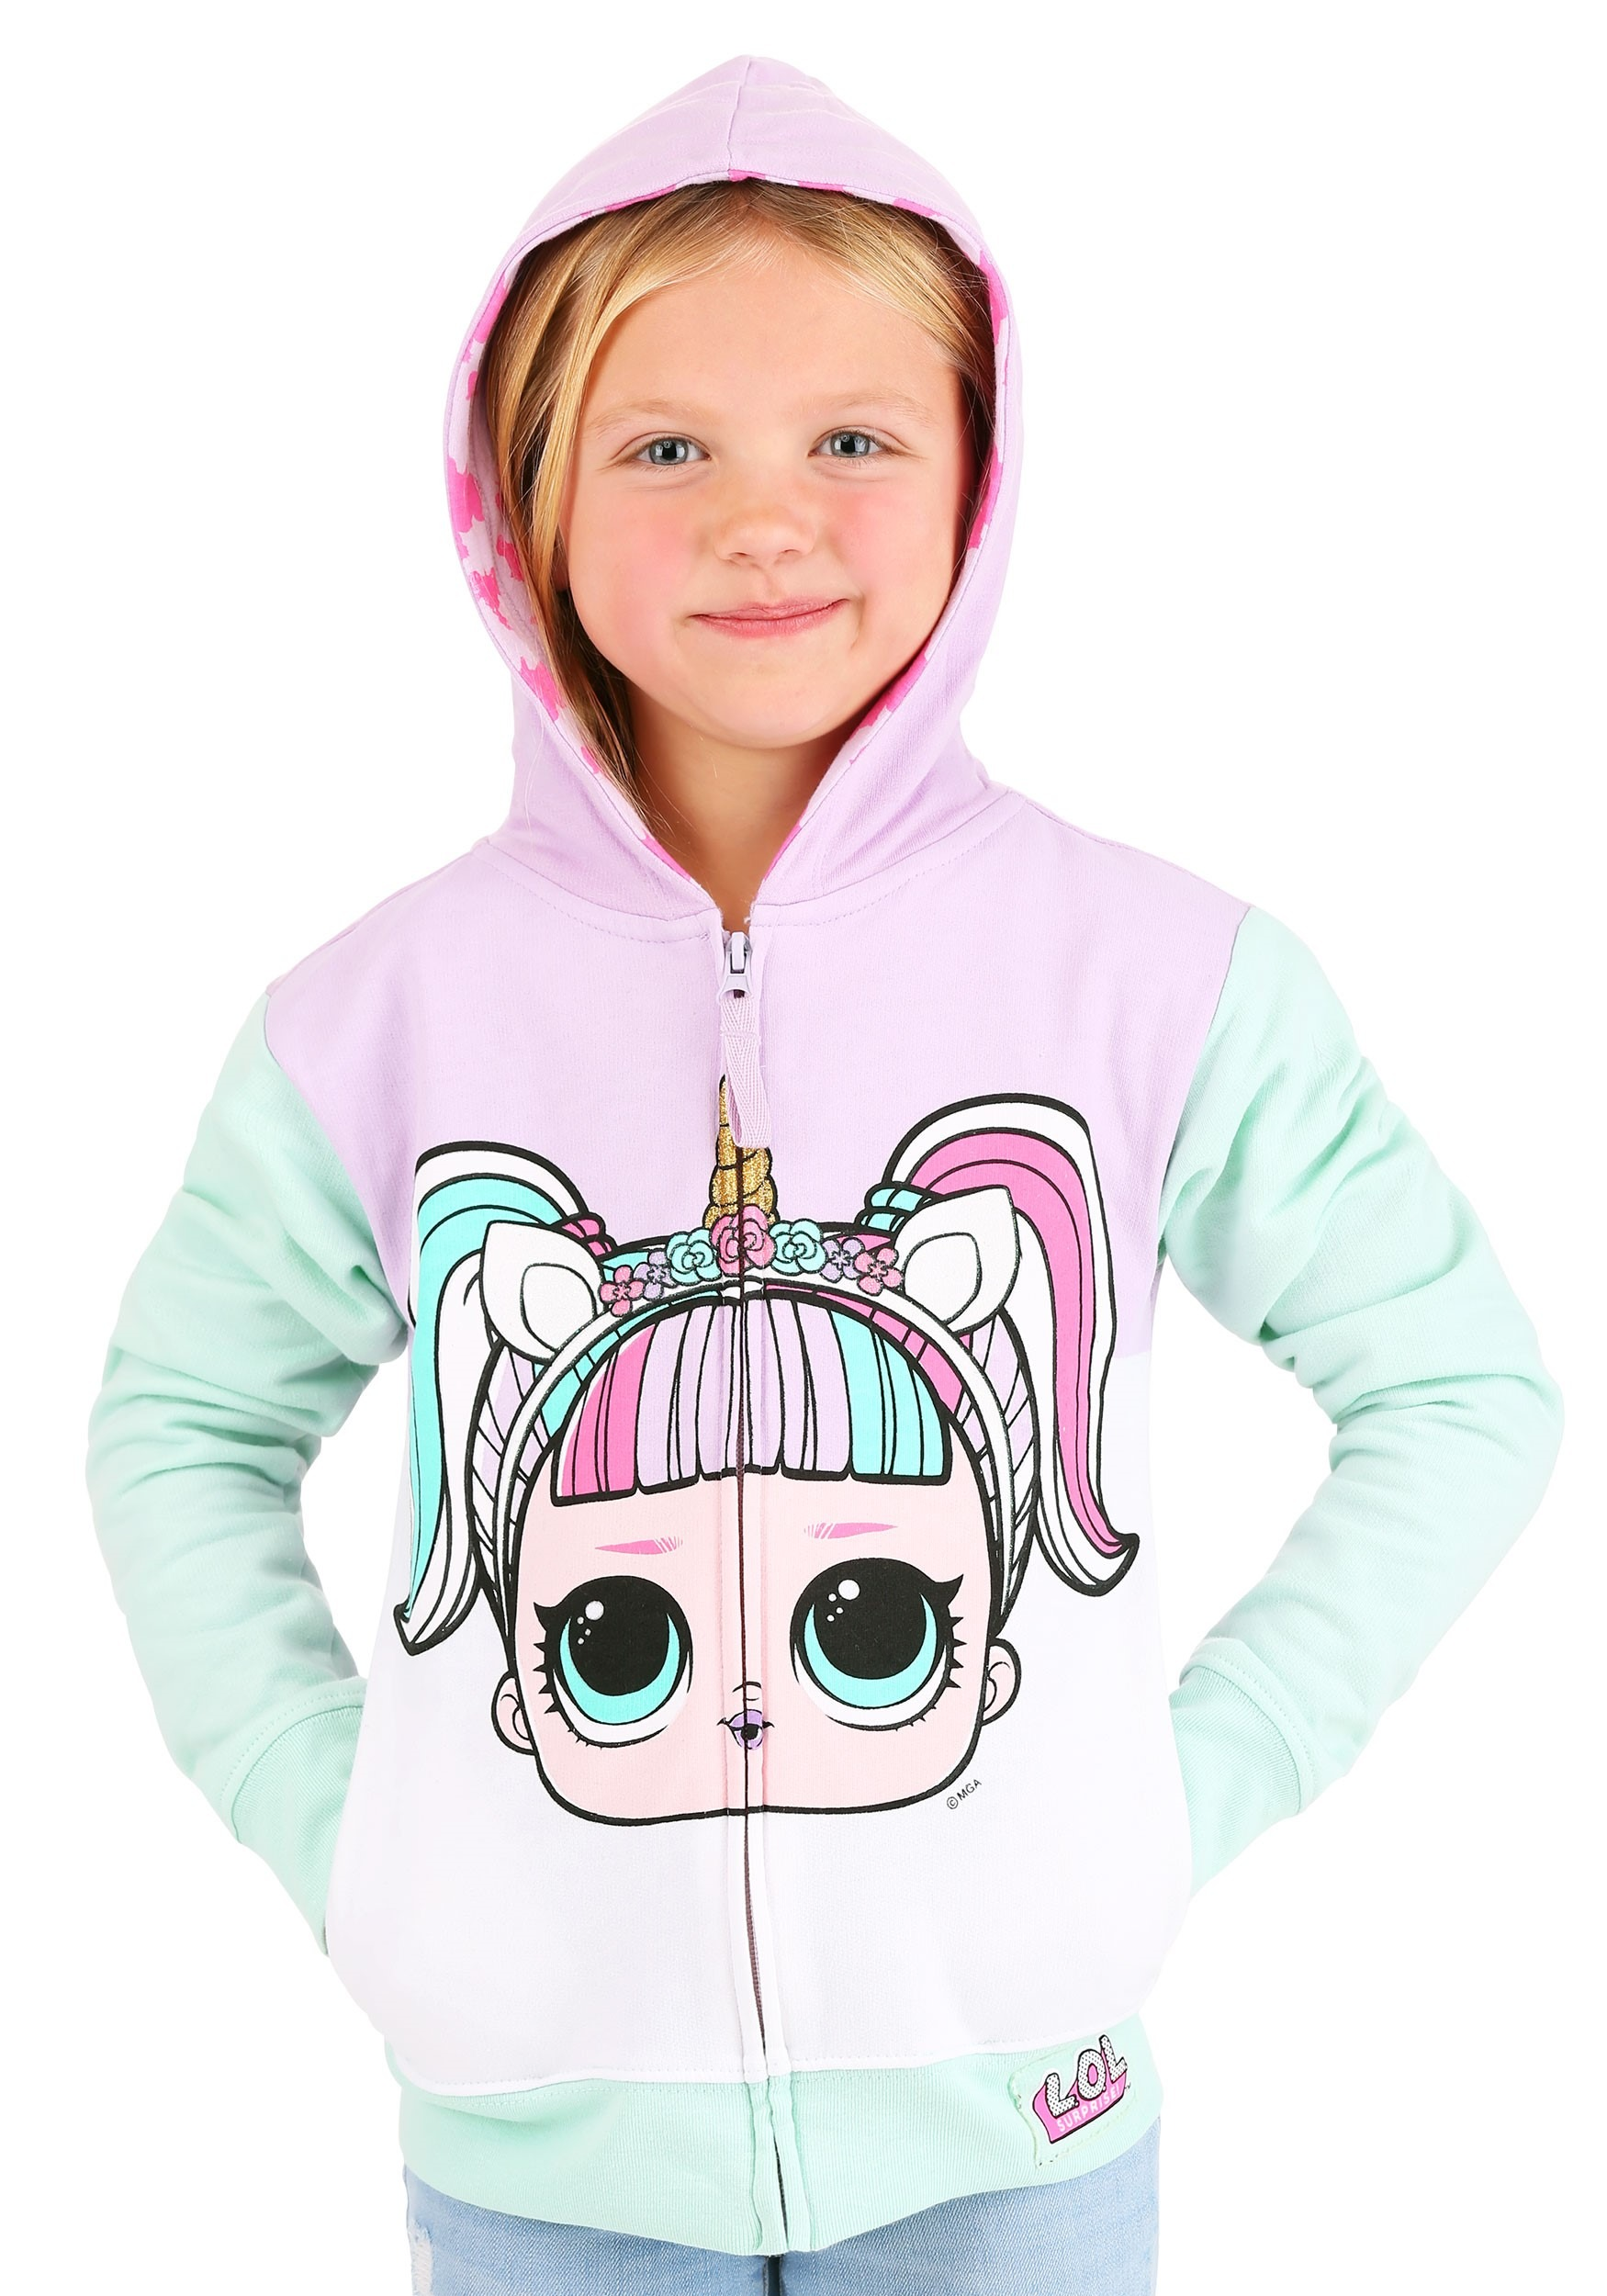 LOL Surprise Unicorn Hoodie for Girls